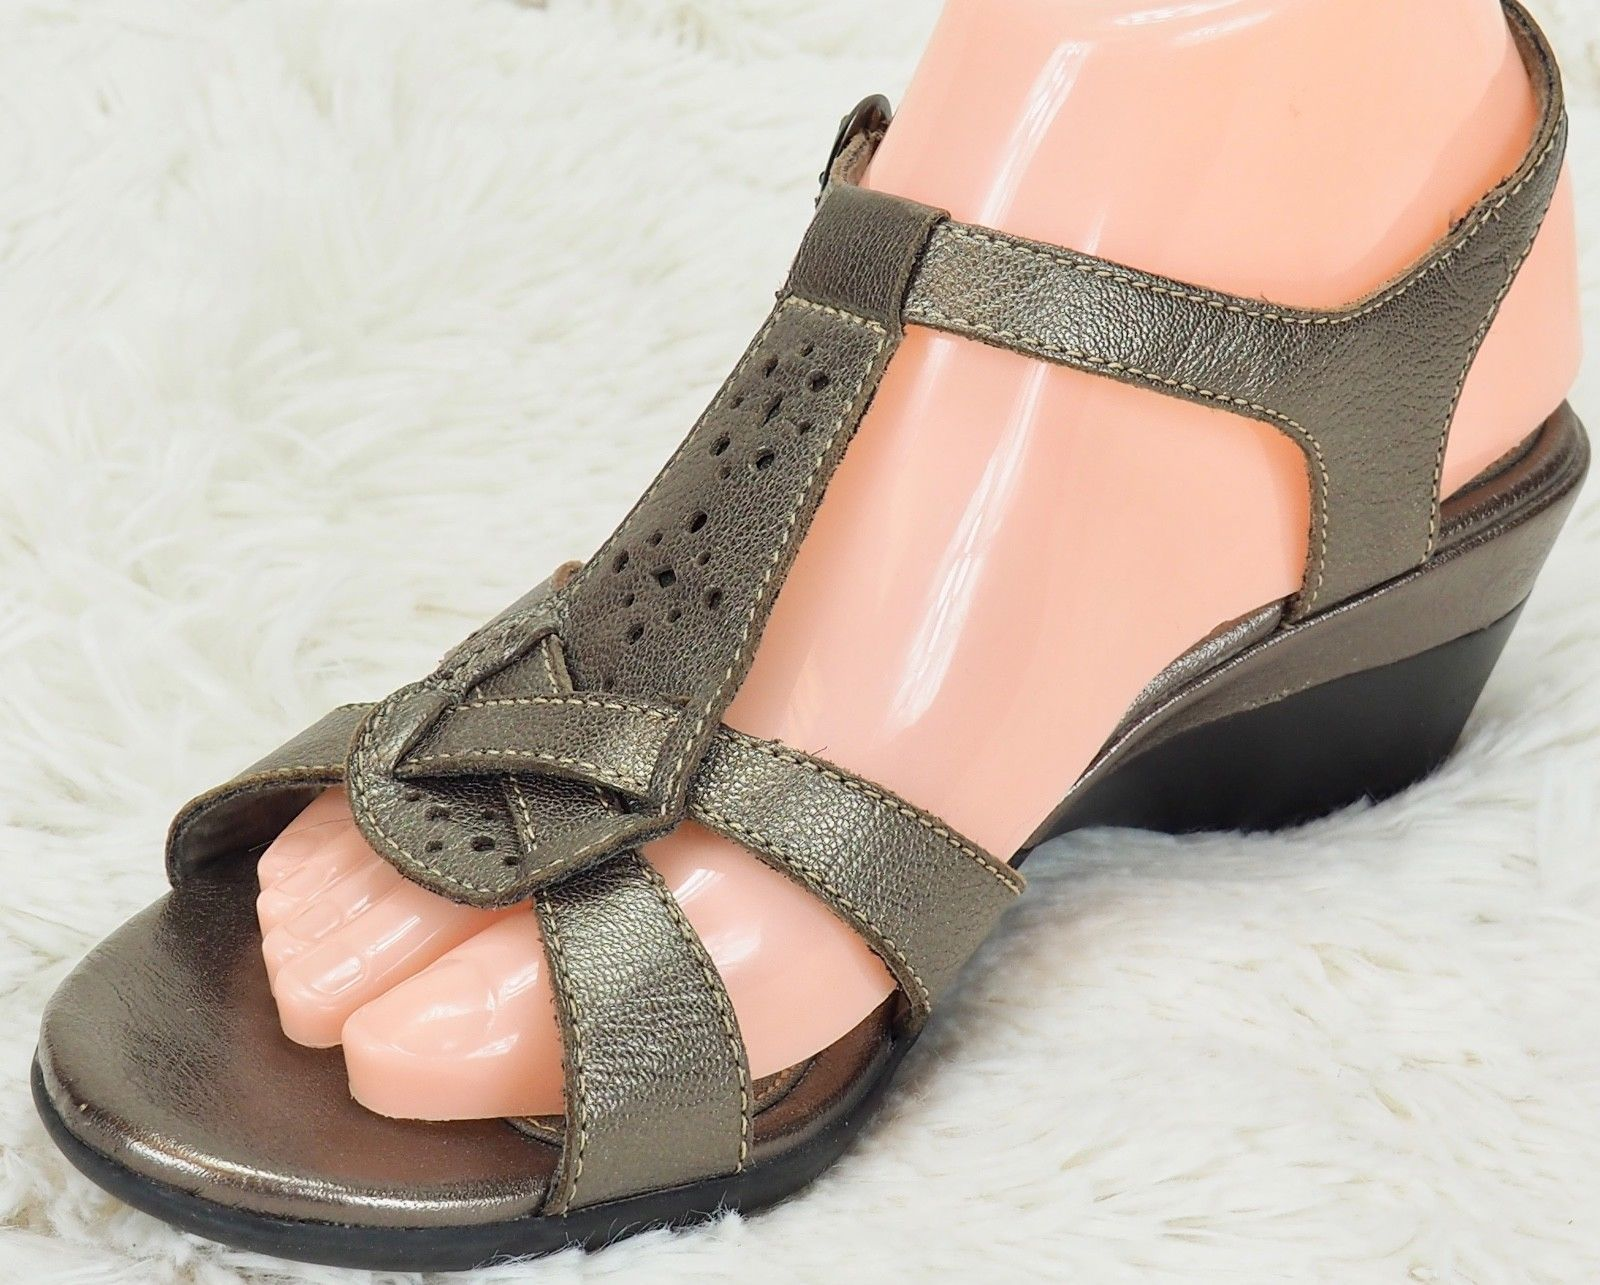 f1b0438947e92 57. 57. Previous. Clarks Leather Sandals 81280 Bronze Gold Buckle Womens US  size 7.5 2